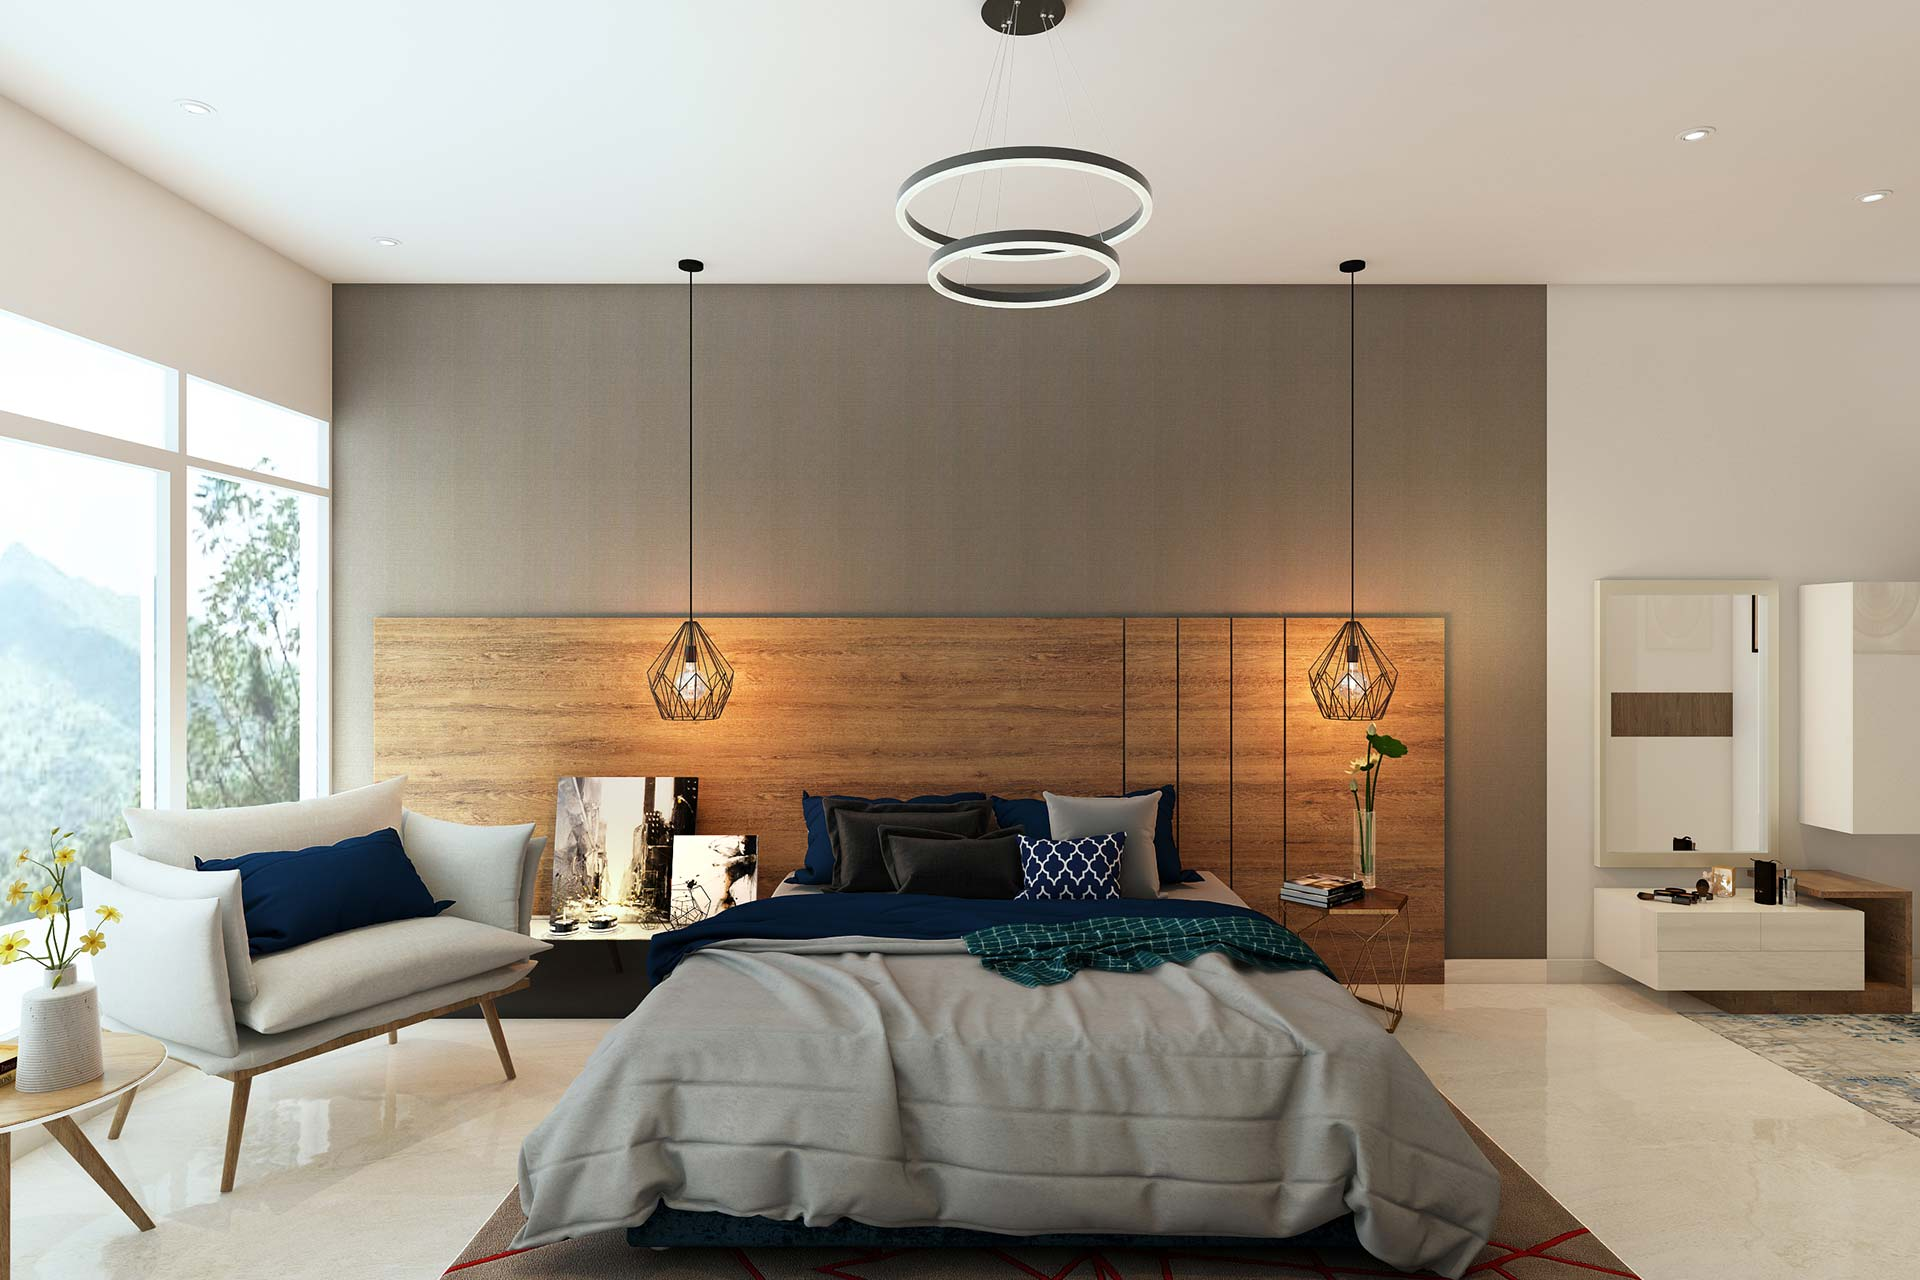 7 Lighting Ideas For Your Bedroom Design Cafe